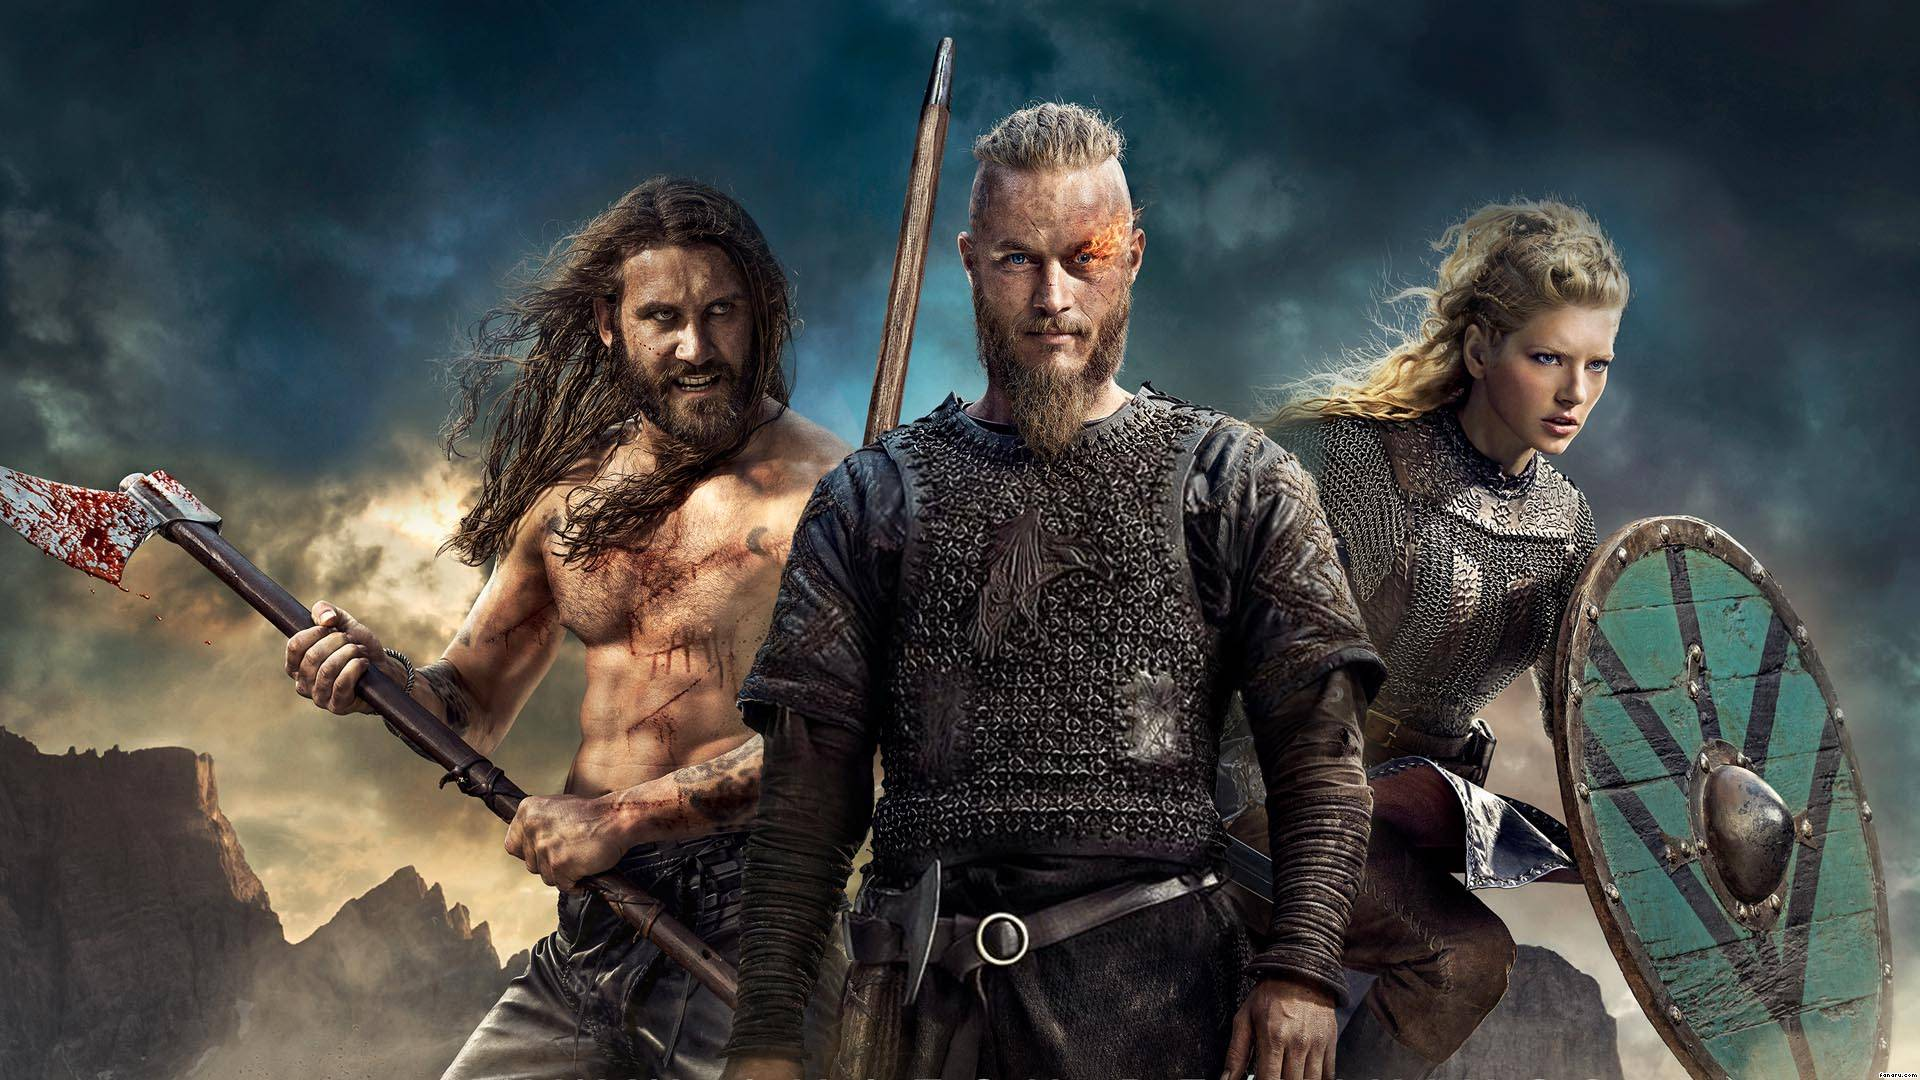 Vikings Fun Facts And Wallpapers Of The Popular Show